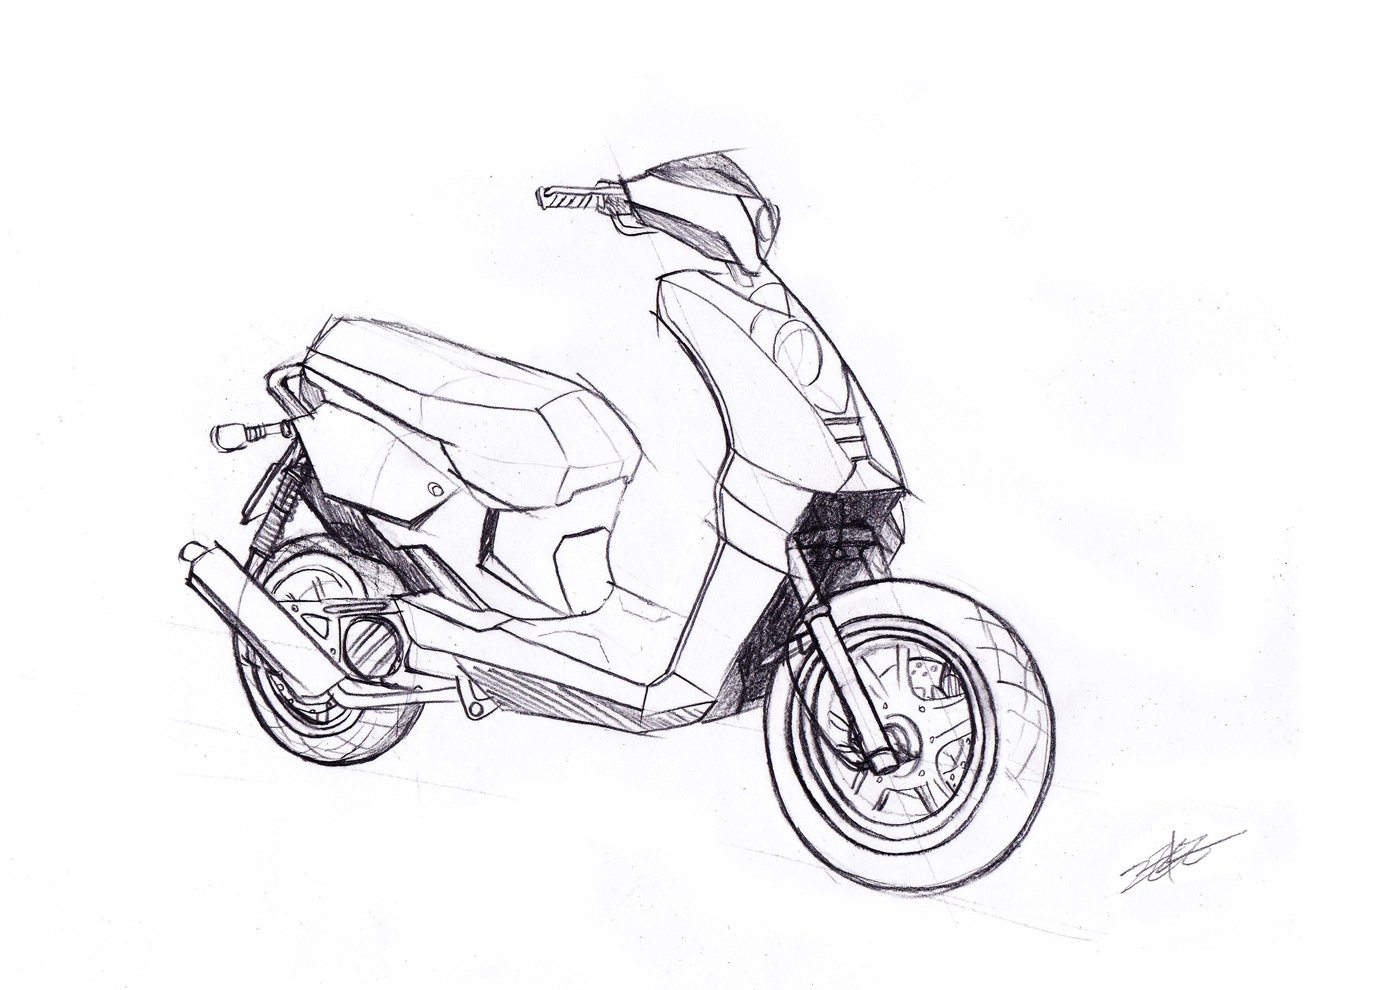 1400x990 Motorcycle Sketch And 2d Rendering By Minghsien Wu